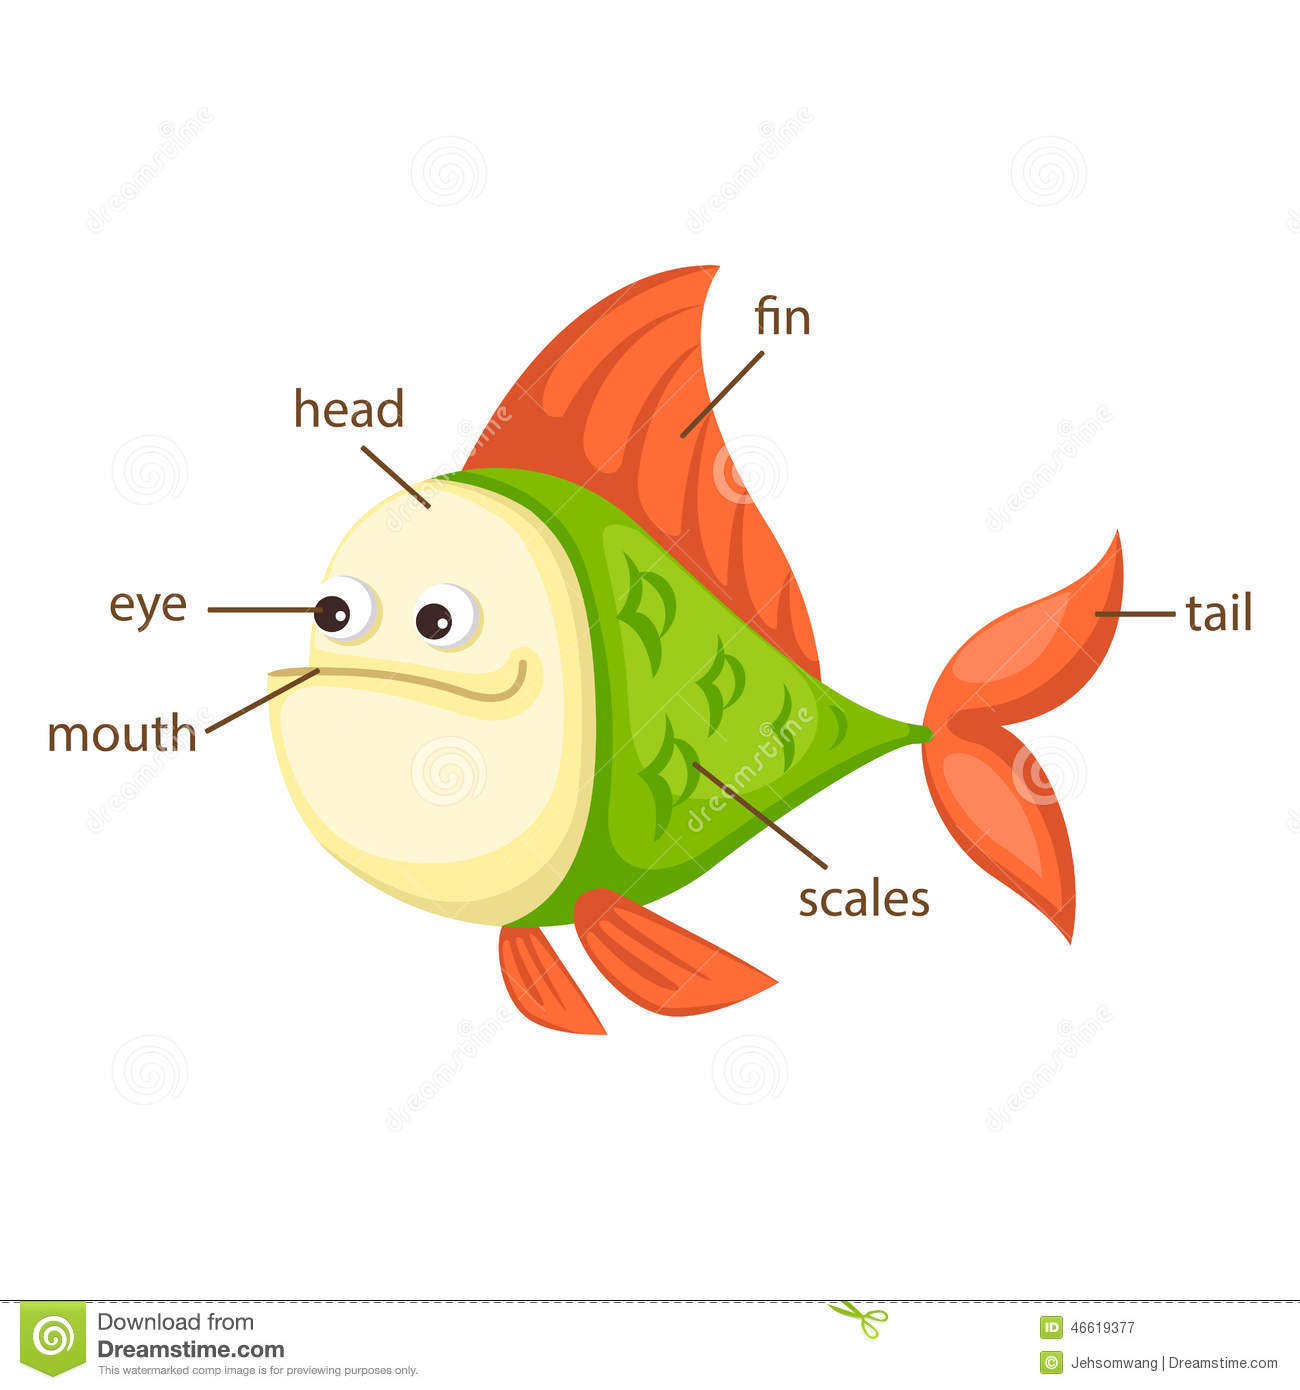 Fish Vocabulary Part Of Body Vector Stock Vector - Image: 46619377